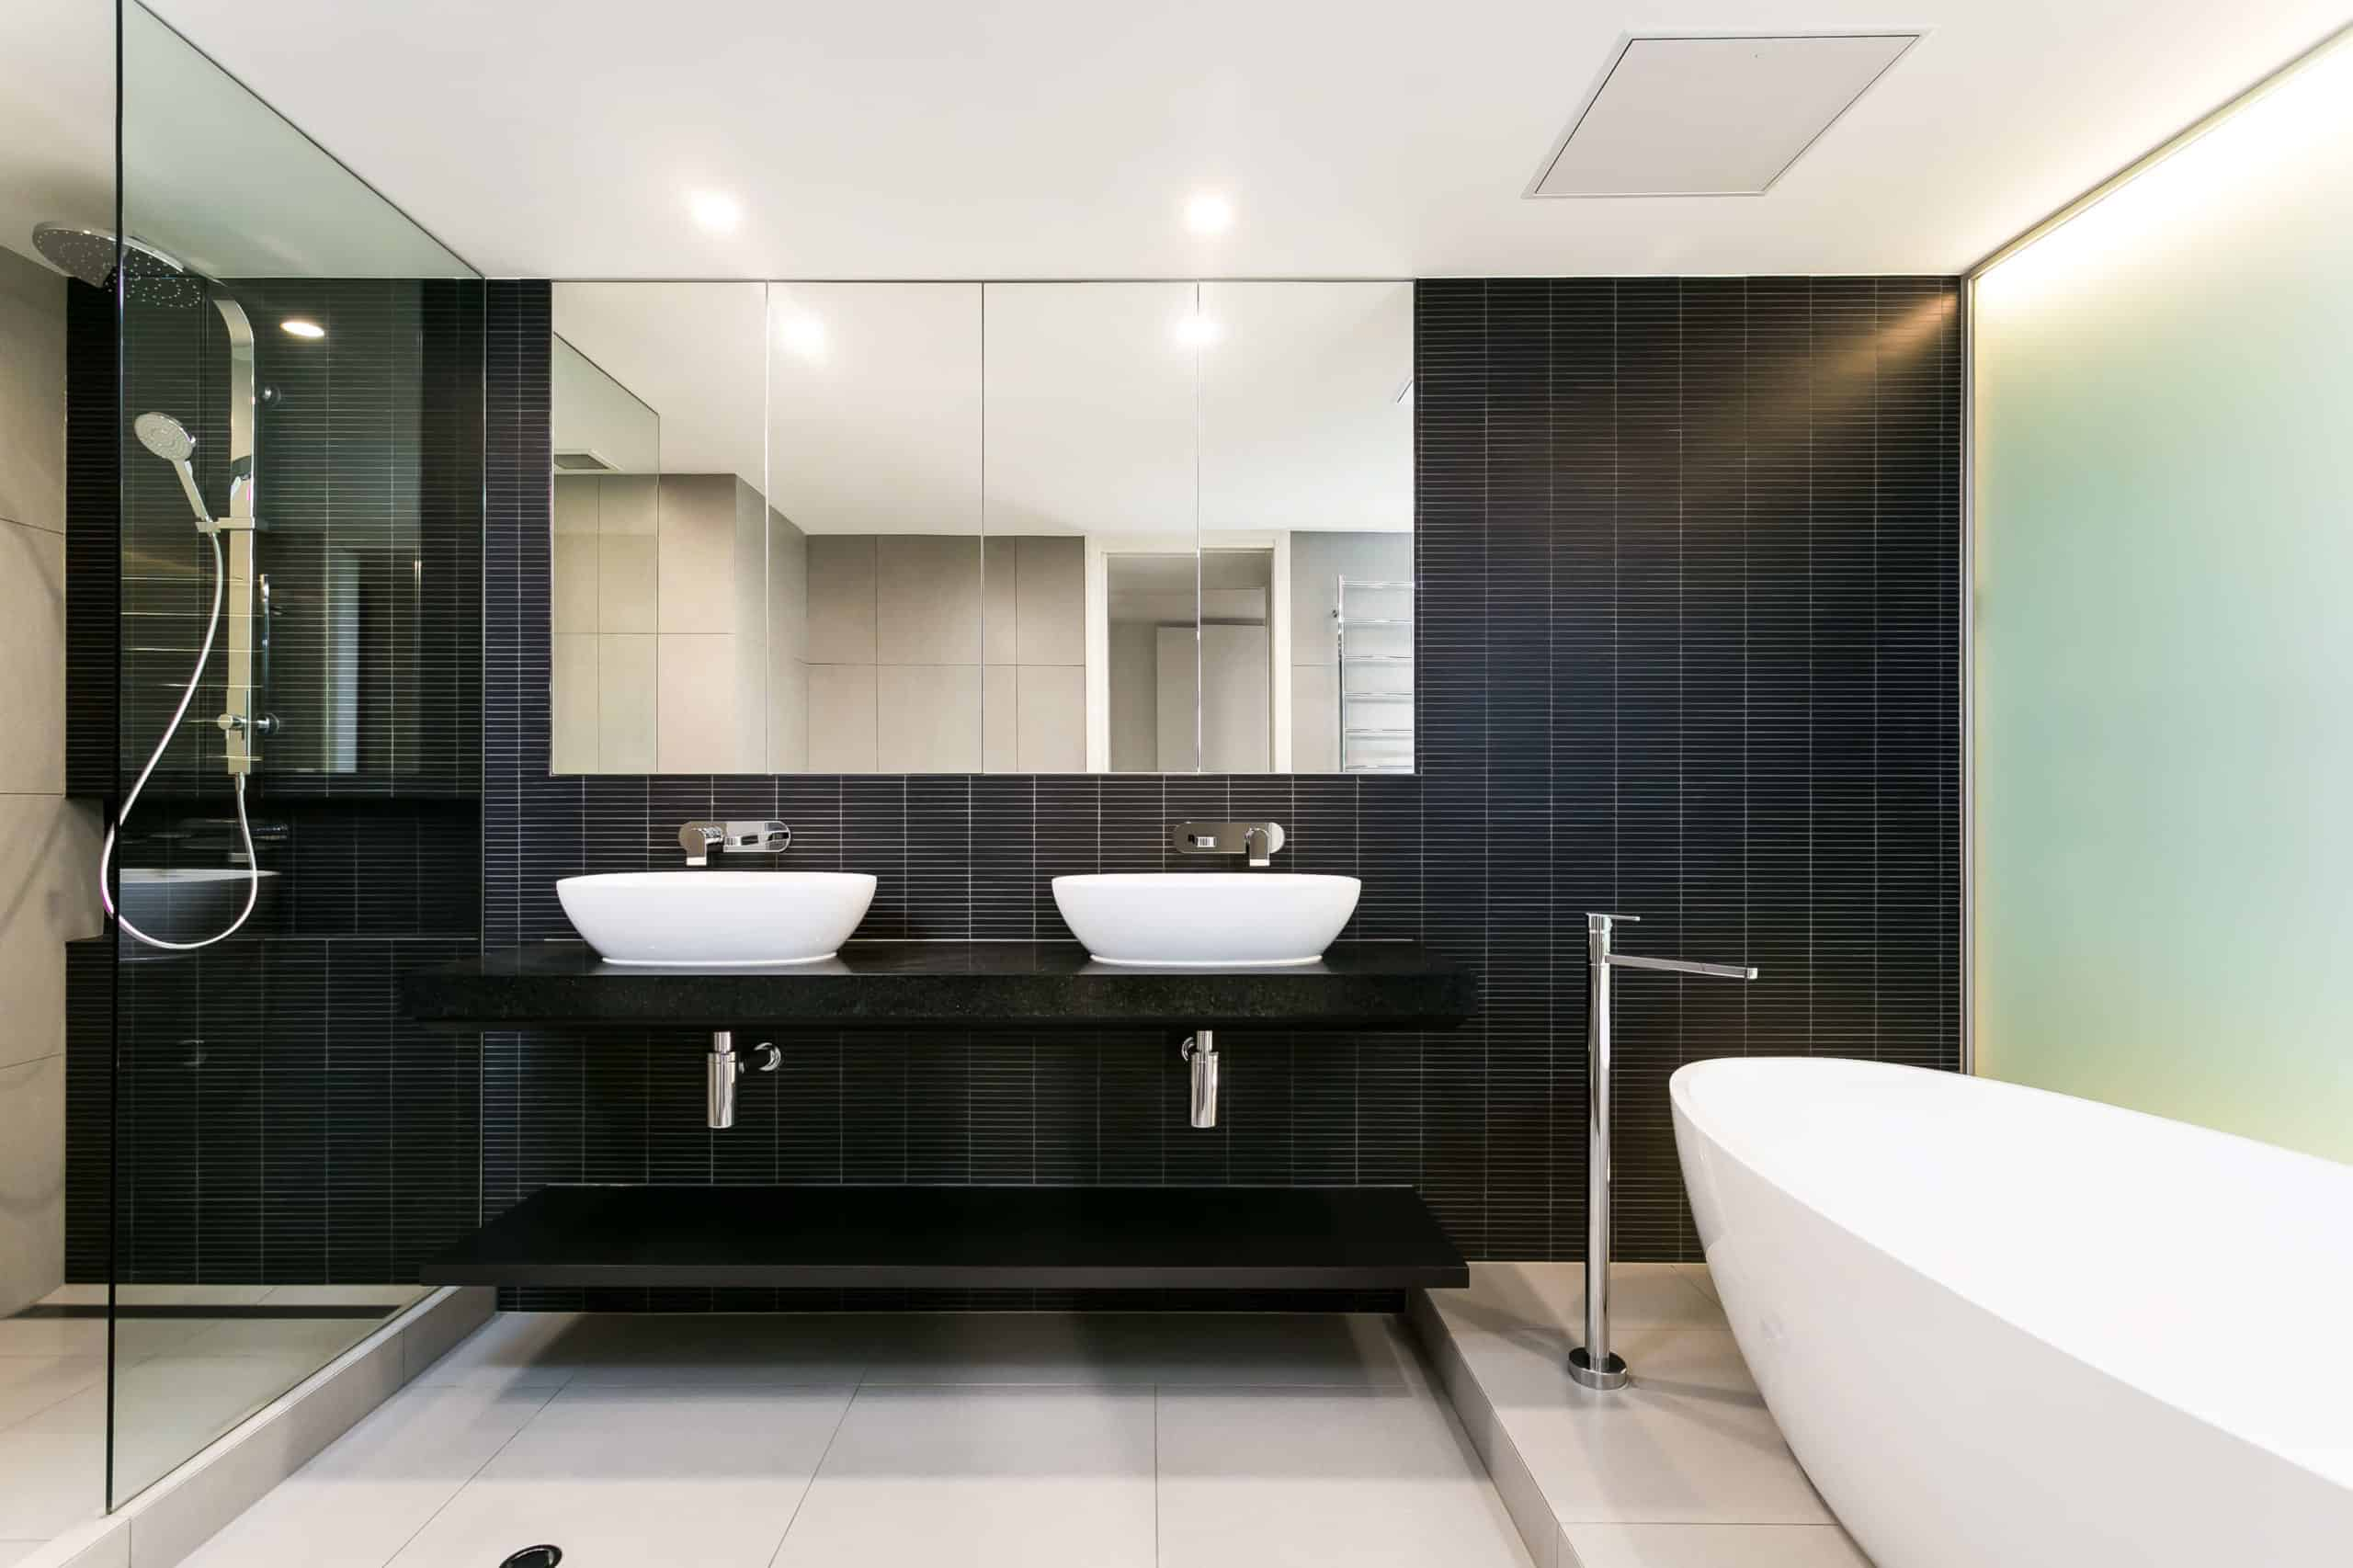 The primary bath hosts a high contrast mixture of tones, with black tiled wall over off-white large format beige floor tiling, plus white pedestal tub and vessel sinks. The floating black vanity hangs next to a large glass-enclosed shower.